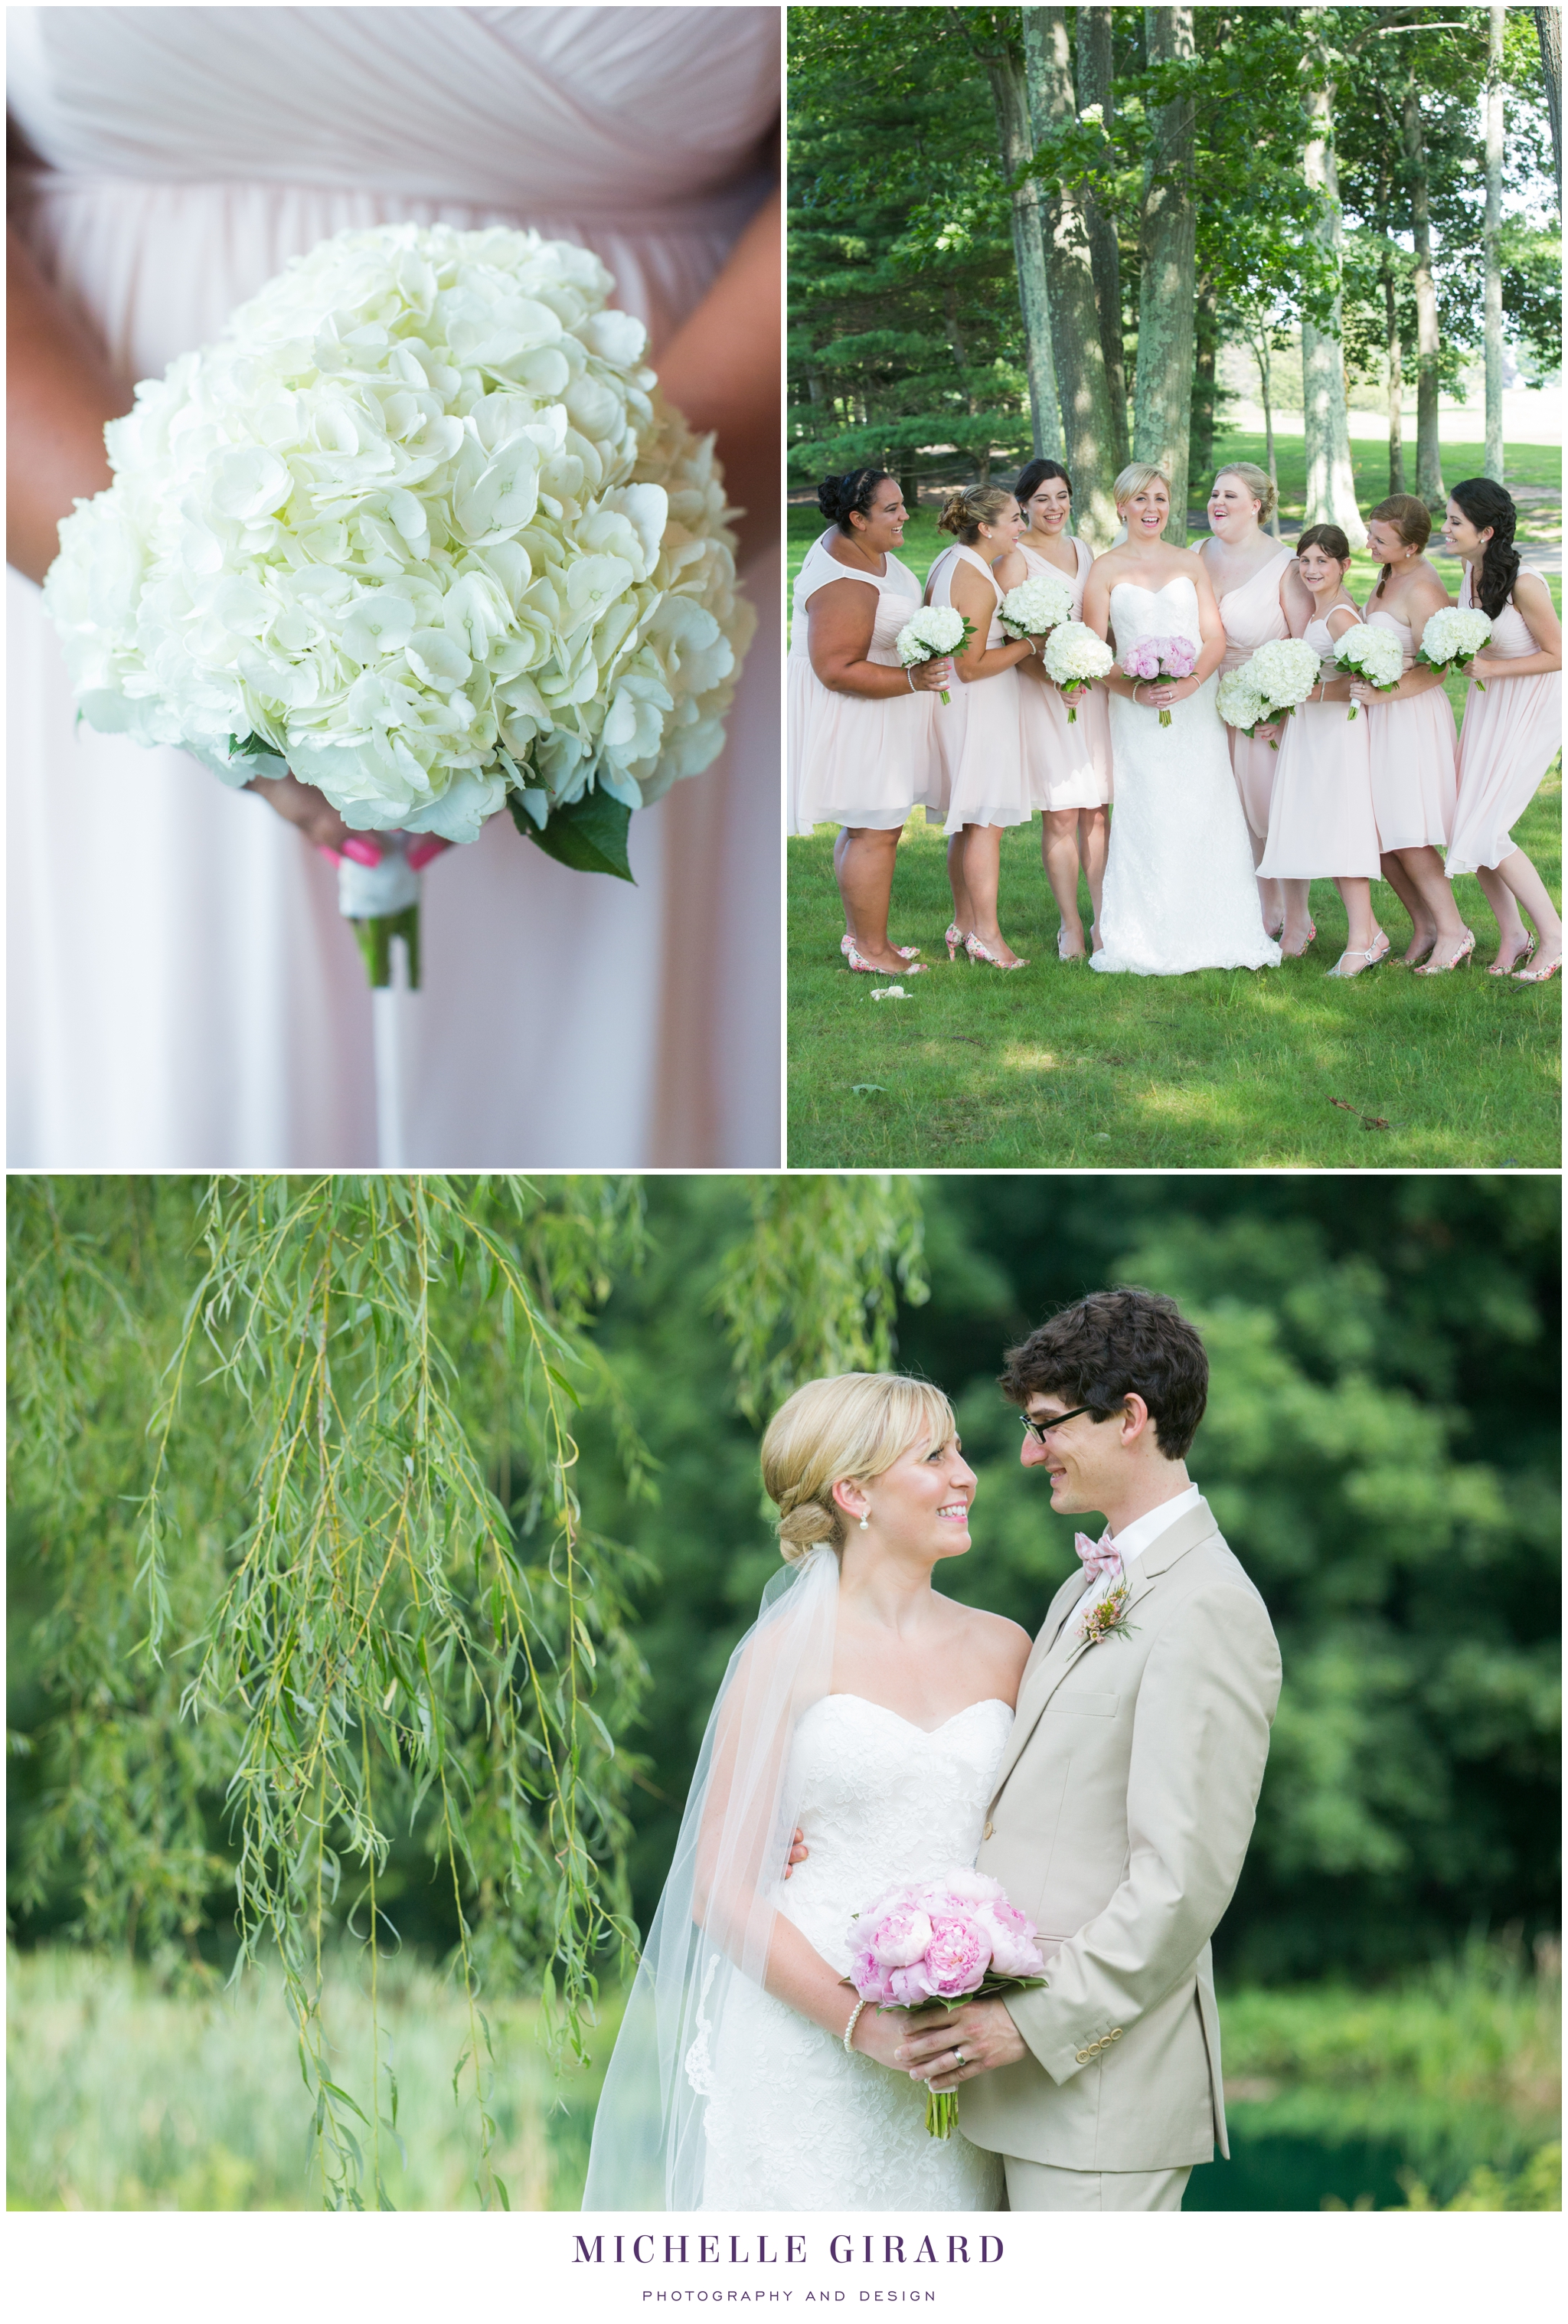 FarmsCountryClub_SummerWedding_MichelleGirardPhotography12.jpg